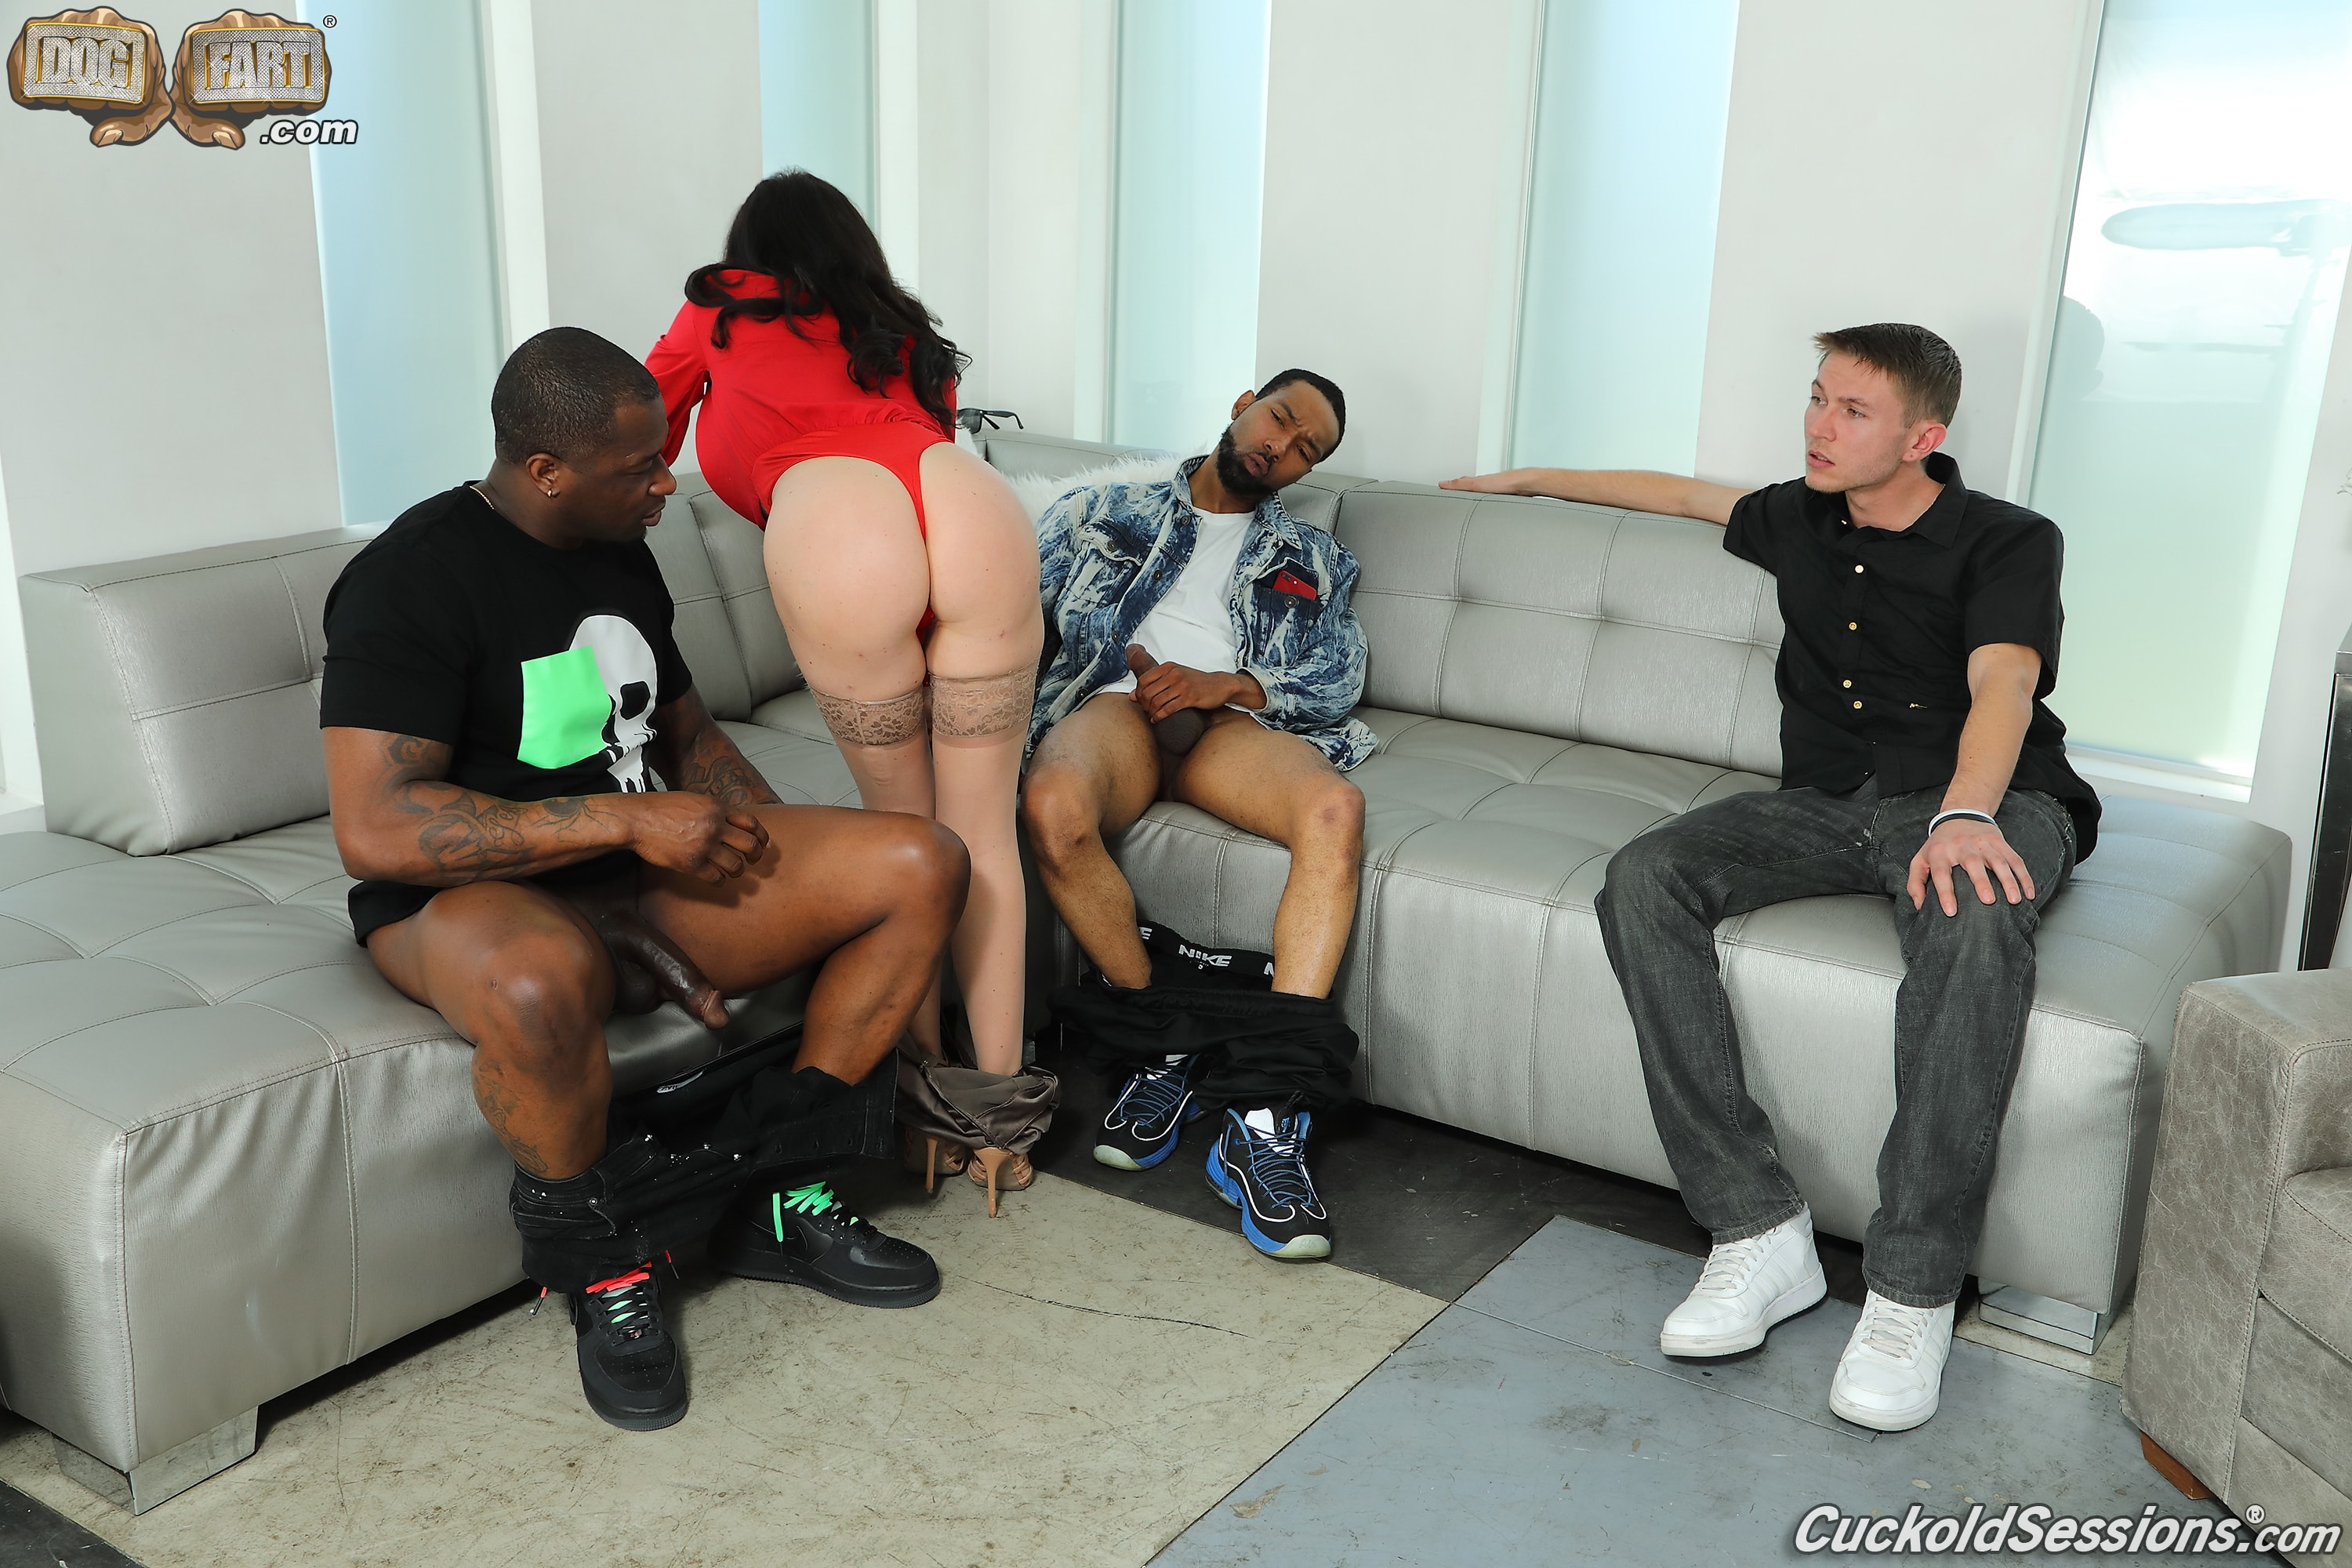 Dogfart '- Cuckold Sessions - Scene 2' starring Krissy Lynn (Photo 10)